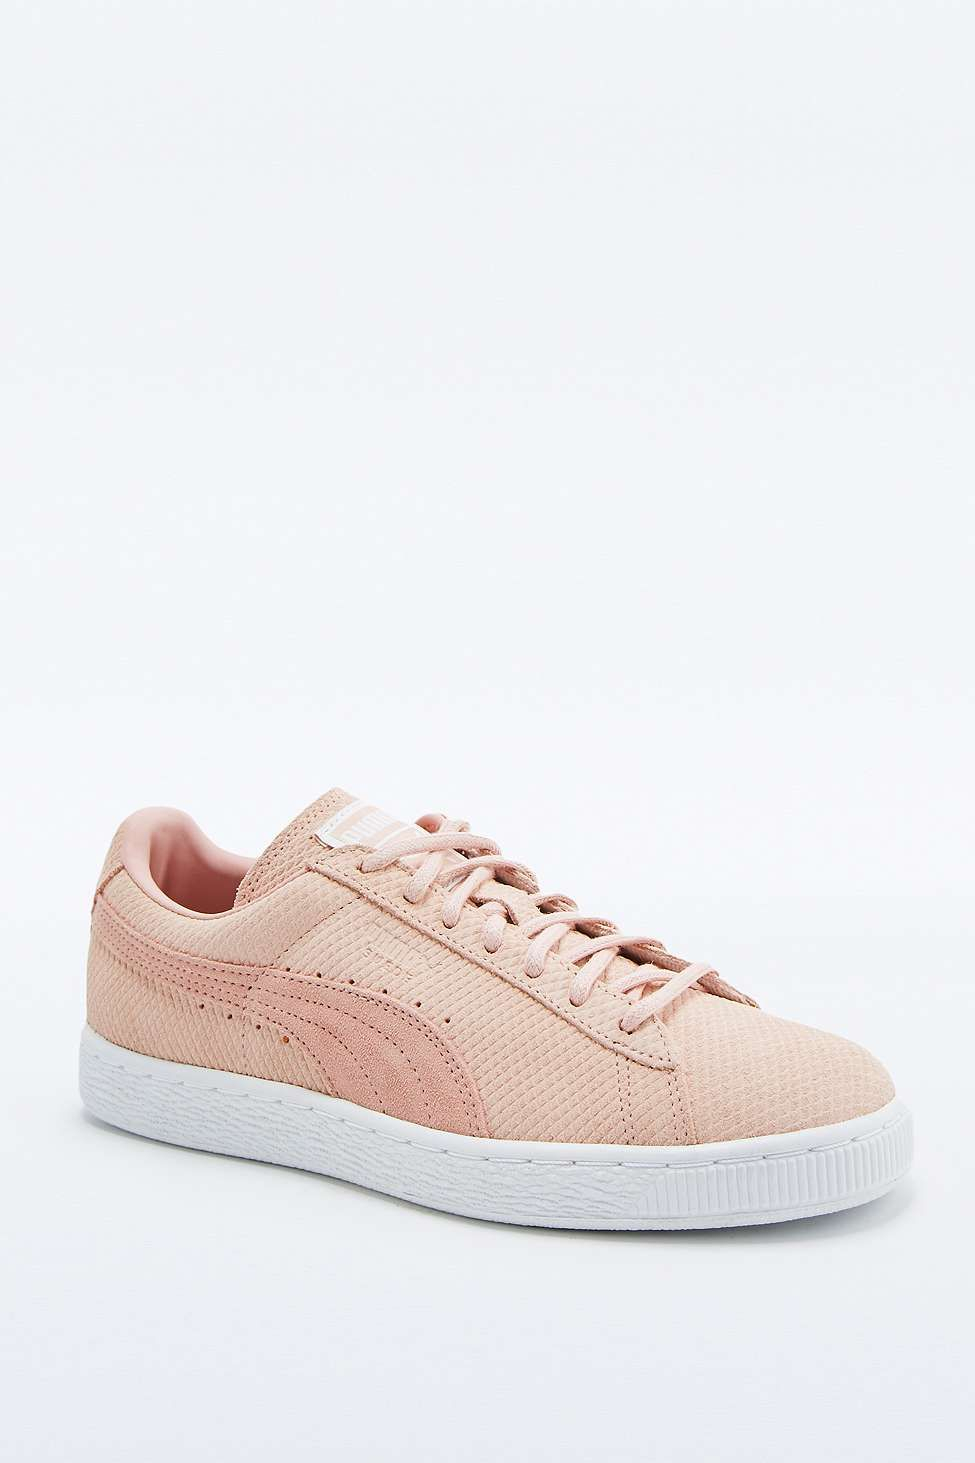 économiser 26982 cf8d4 Puma Classic+ Pink Suede Trainers | sneakers | Chaussure ...